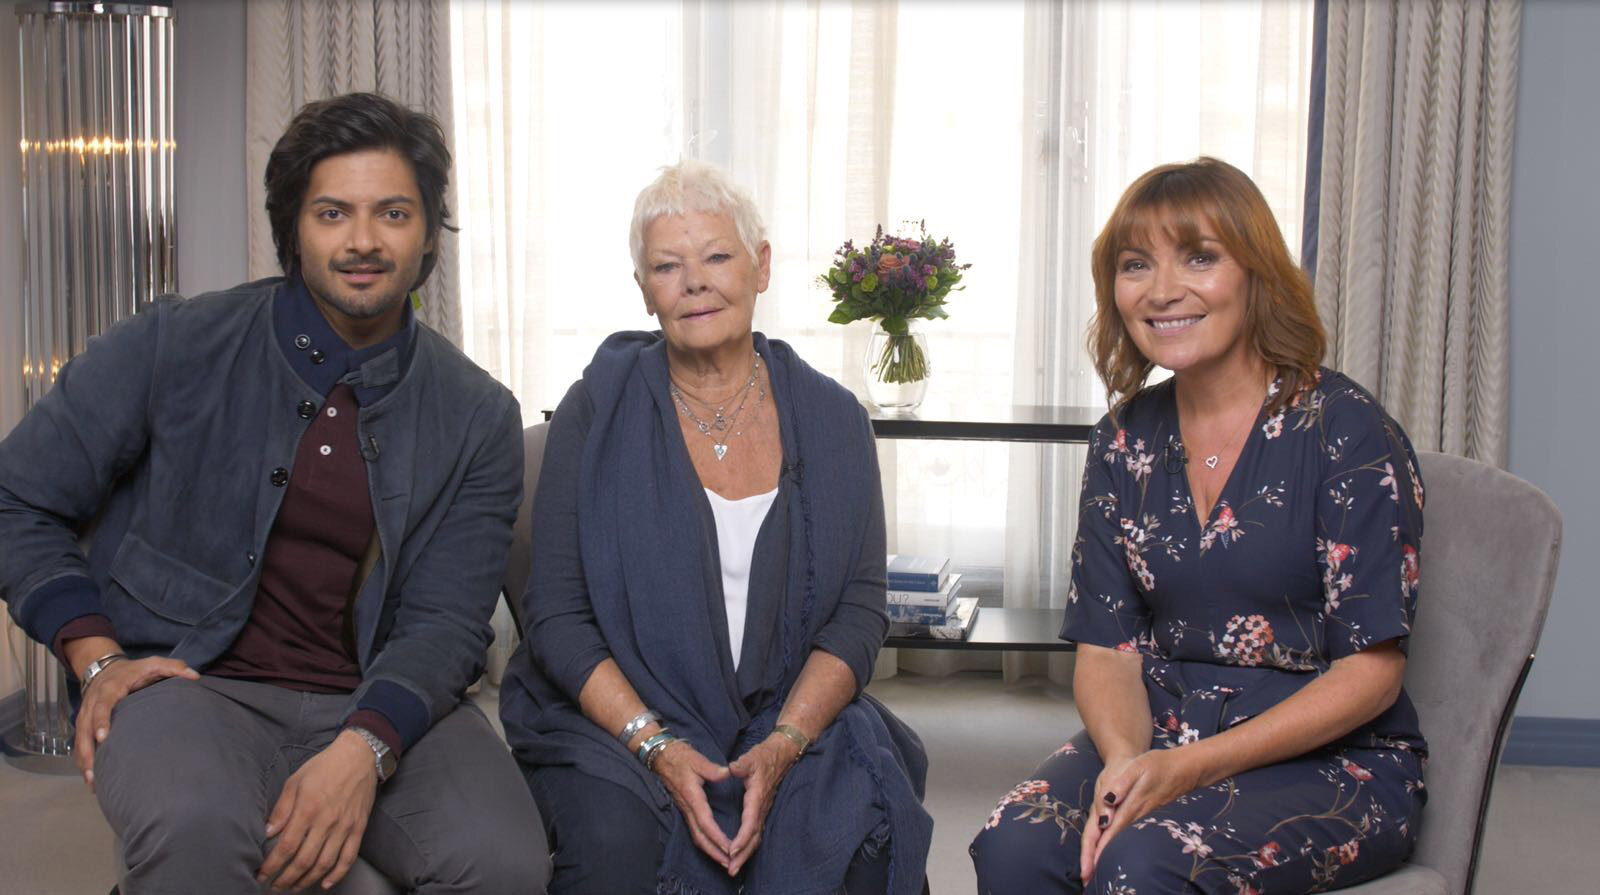 Lorraine had a rare time last week meeting the stars of Victoria And Abdul, Ali Fazal and Dame Judi Dench